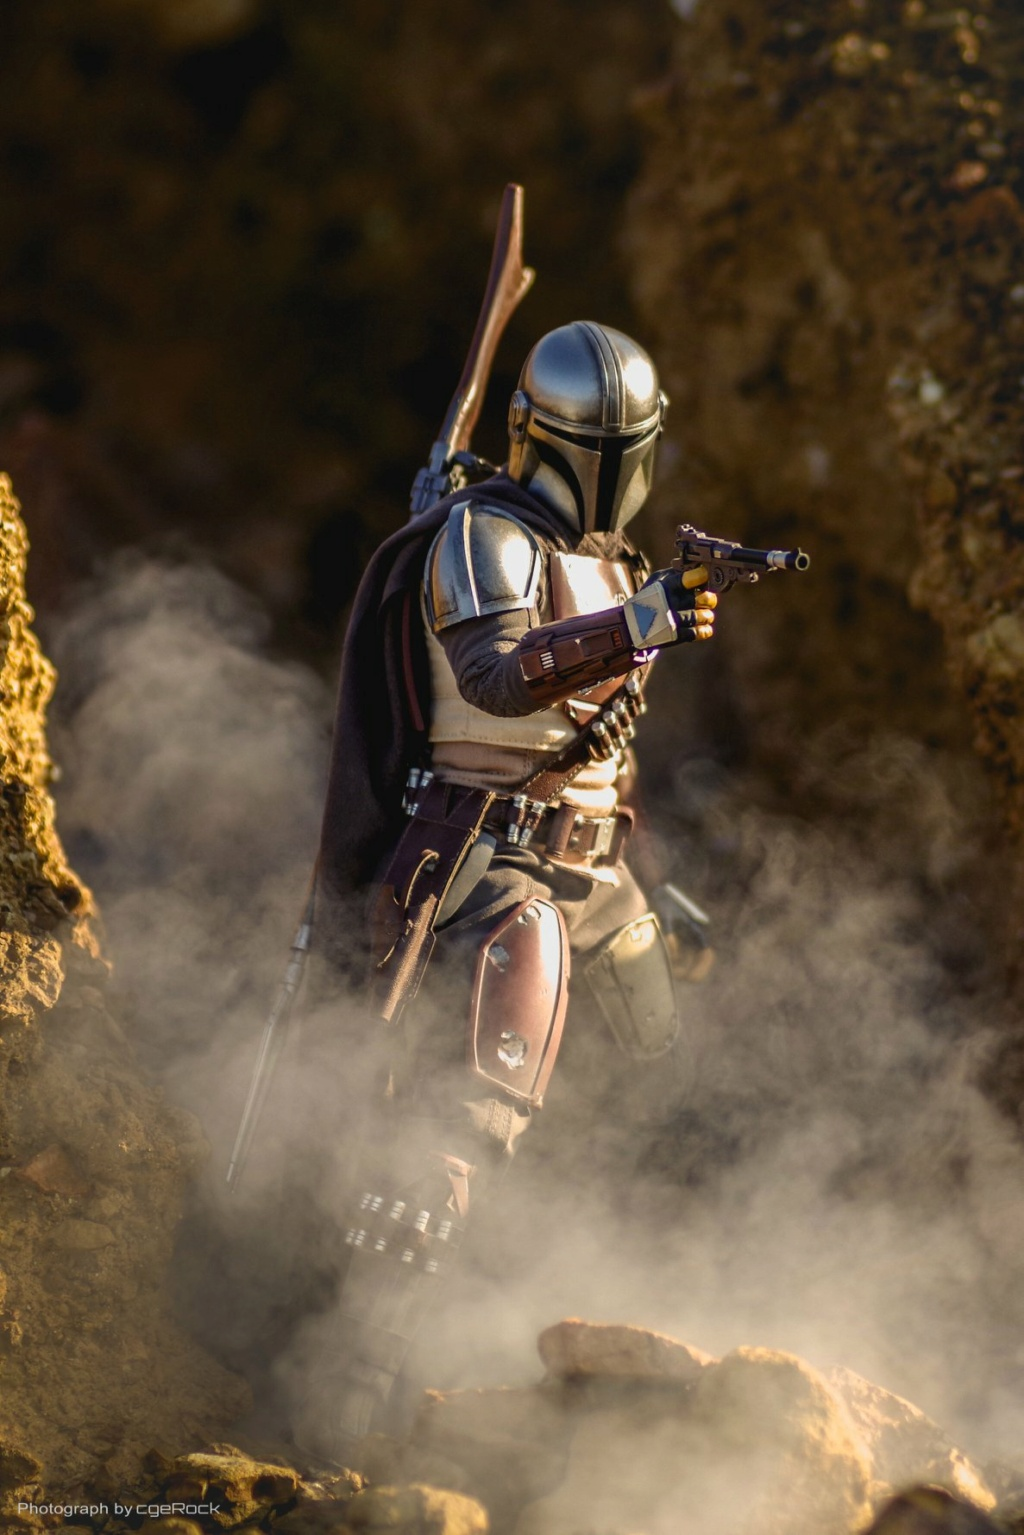 NEW PRODUCT: HOT TOYS: THE MANDALORIAN -- THE MANDALORIAN 1/6TH SCALE COLLECTIBLE FIGURE 21158